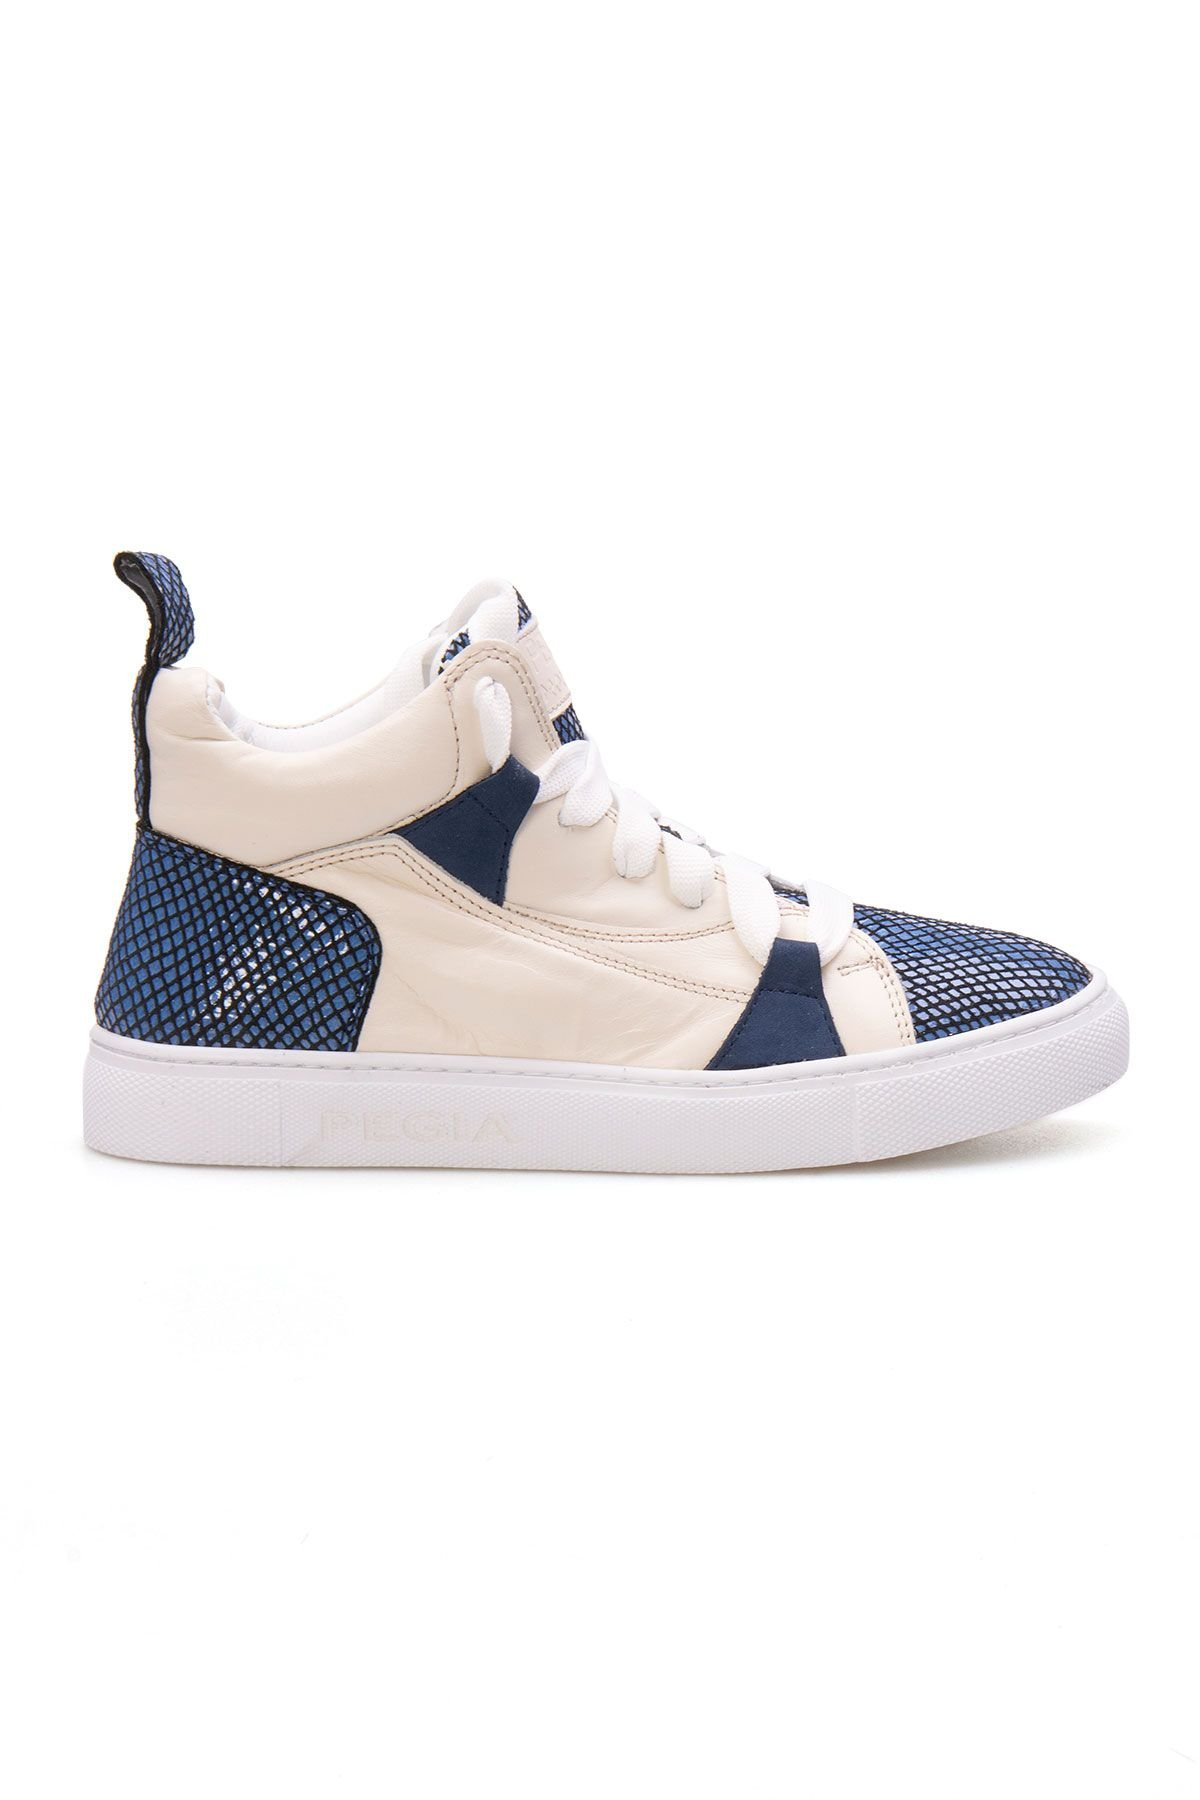 Pegia Genuine Leather Women's Sneaker LA1409 Blue